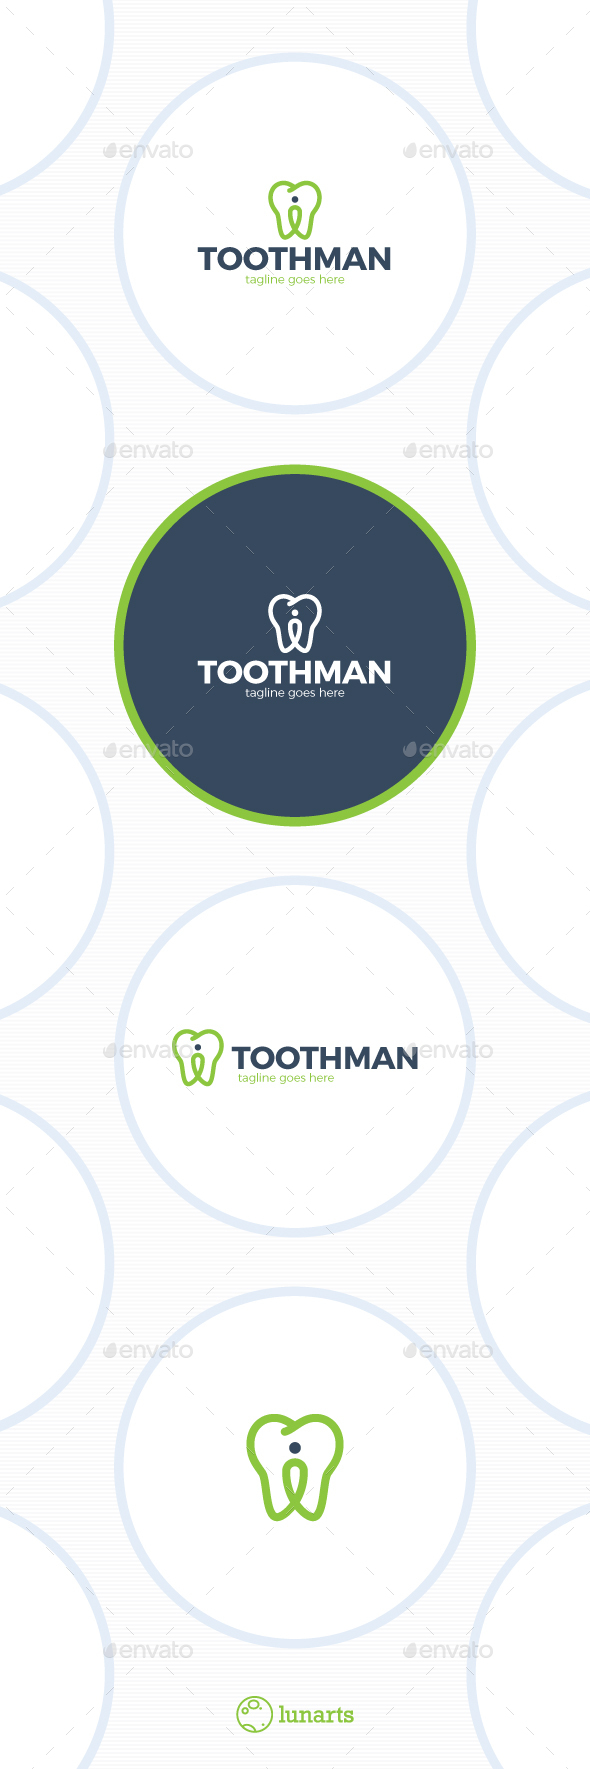 Dental Location Logo - Tooth Pin - Symbols Logo Templates